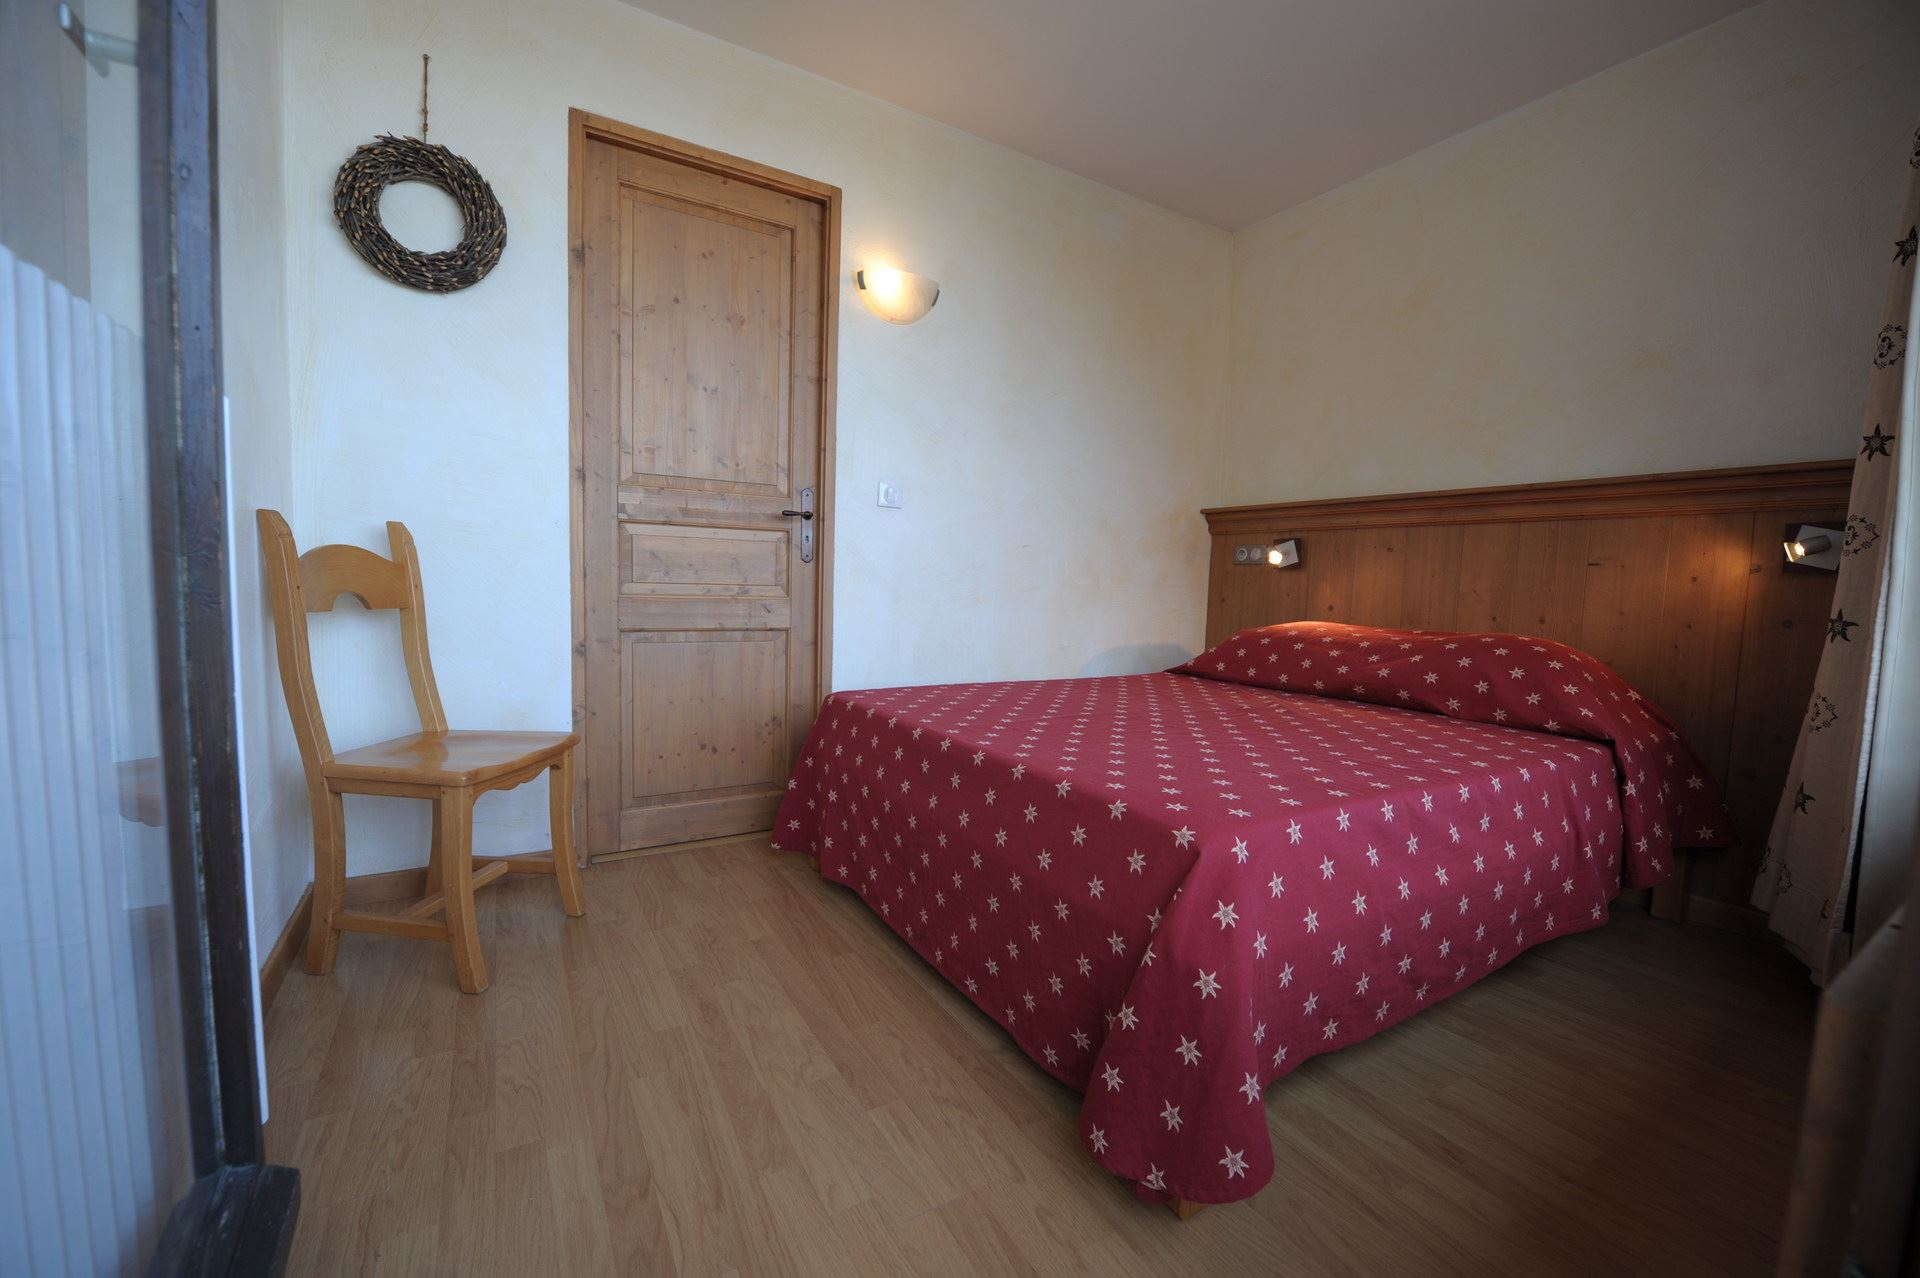 3 Rooms 8 Pers ski-in ski-out / CHAVIERE 329